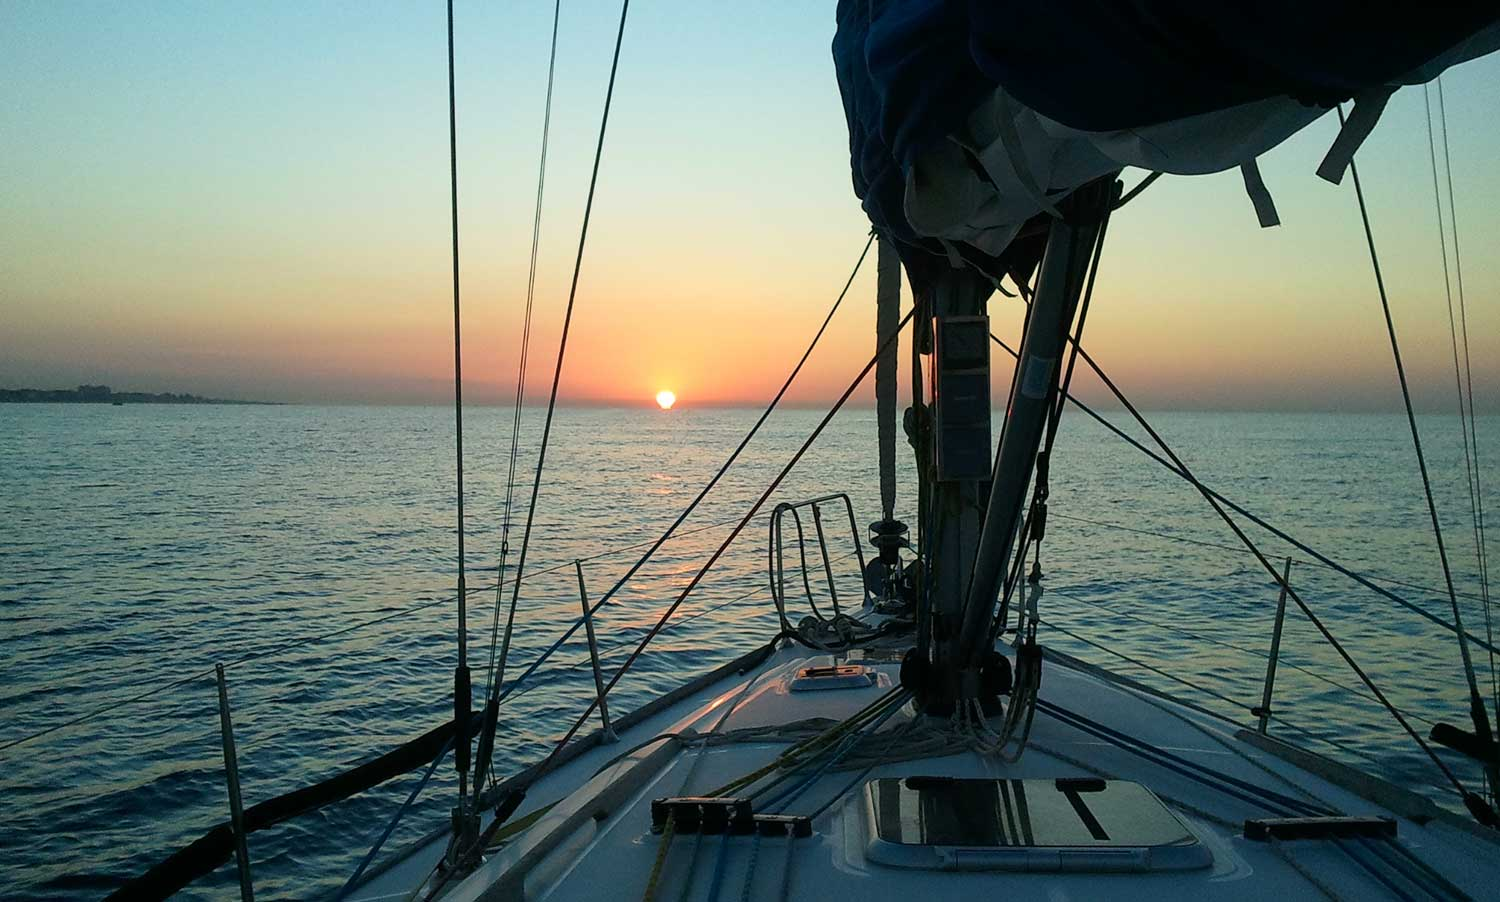 Rent a sailboat and Sail by hours in Barcelona